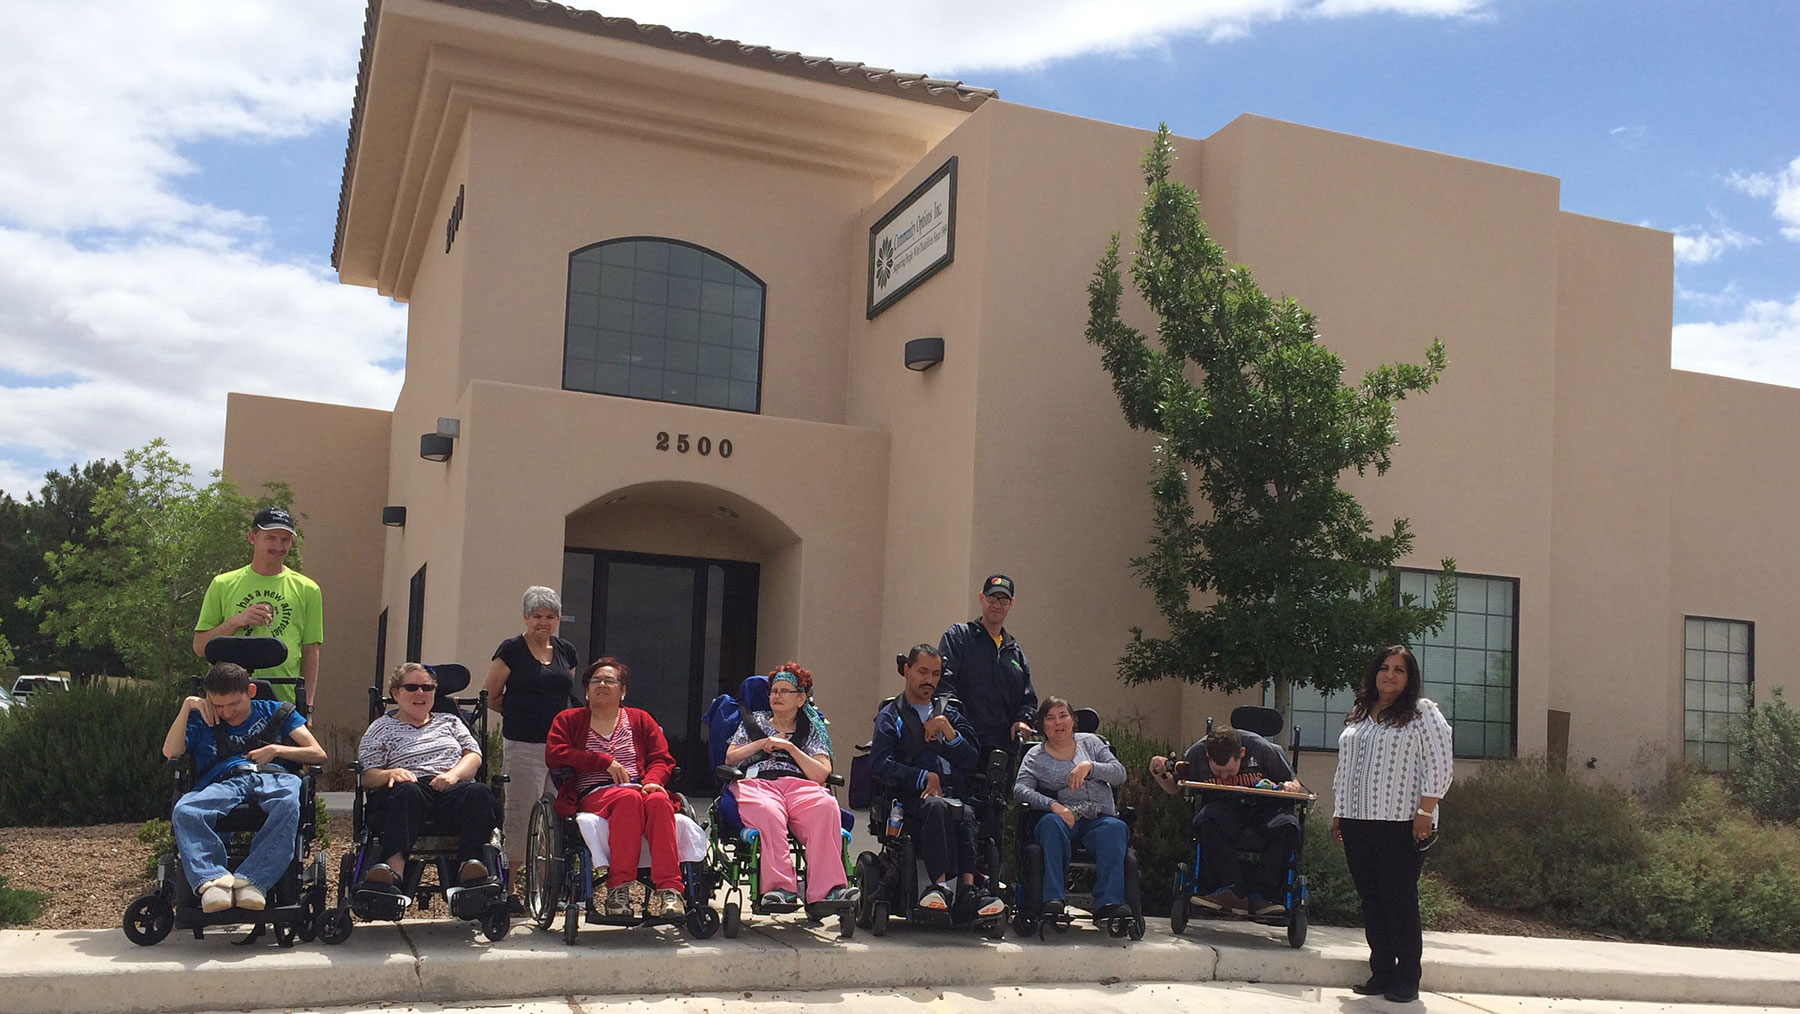 Community Options, Inc. of Las Cruces was established in May of 2007 to provide residential and employment services to individuals with disabilities in southwestern New Mexico communities.